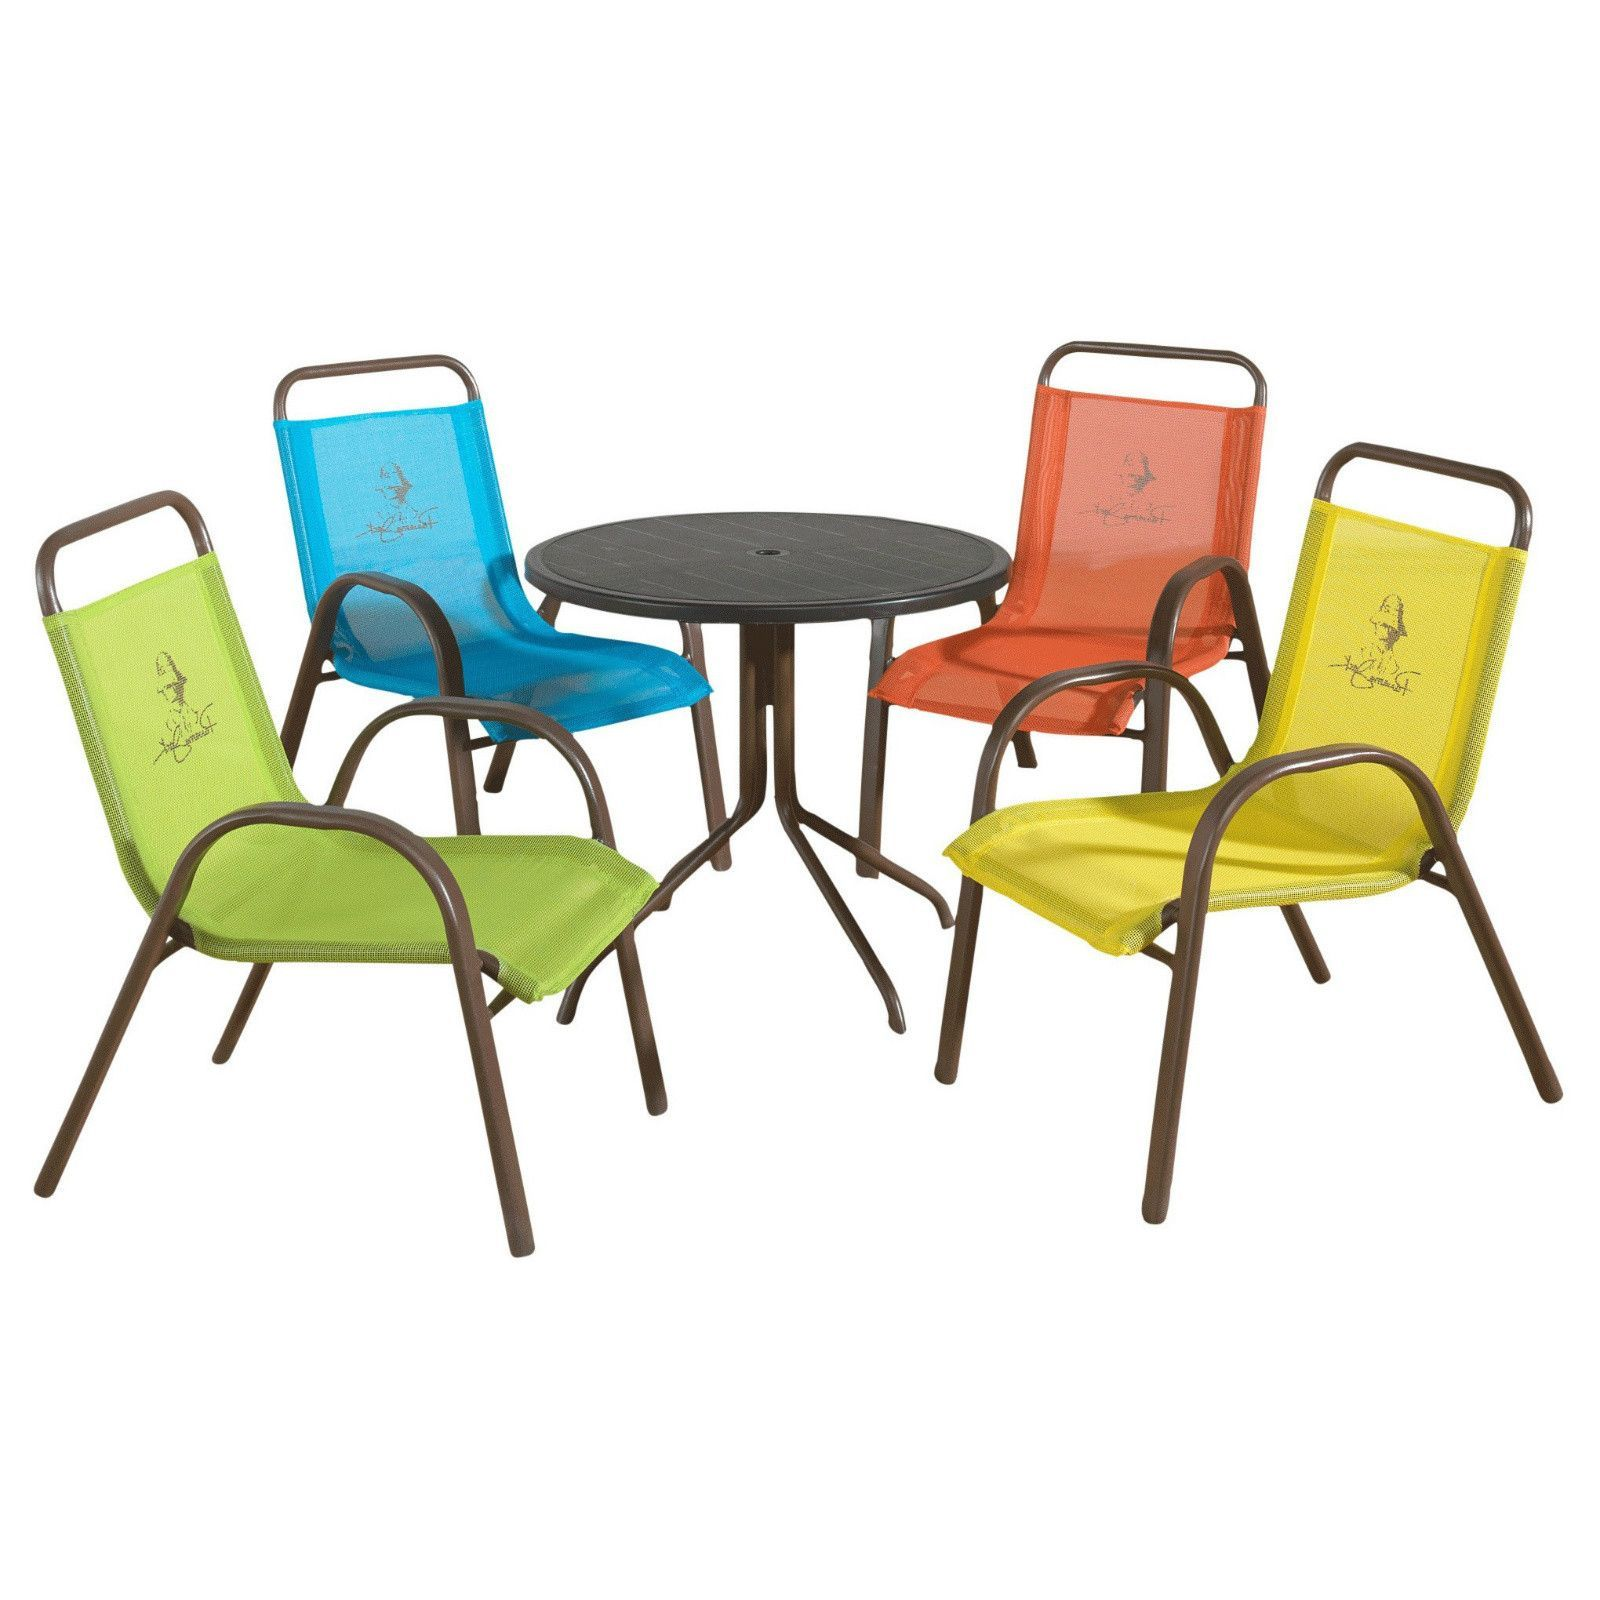 Dining table set for 4 round kids sized chairs aluminum durable 5pc dinette deck product description let the kids enjoy the outdoors with this kid sized